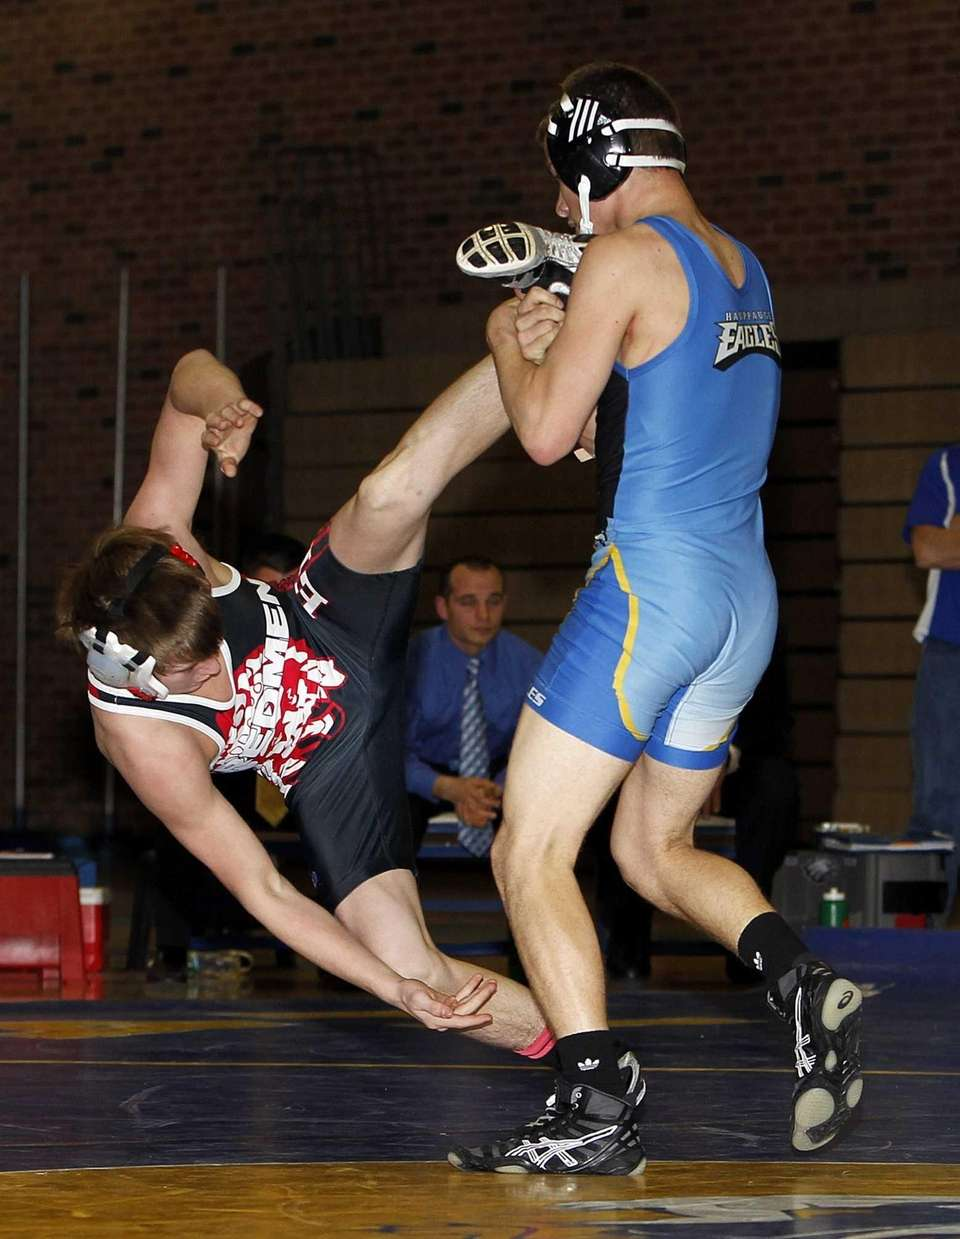 Hauppauge's Austin Munro uses a leg lift to